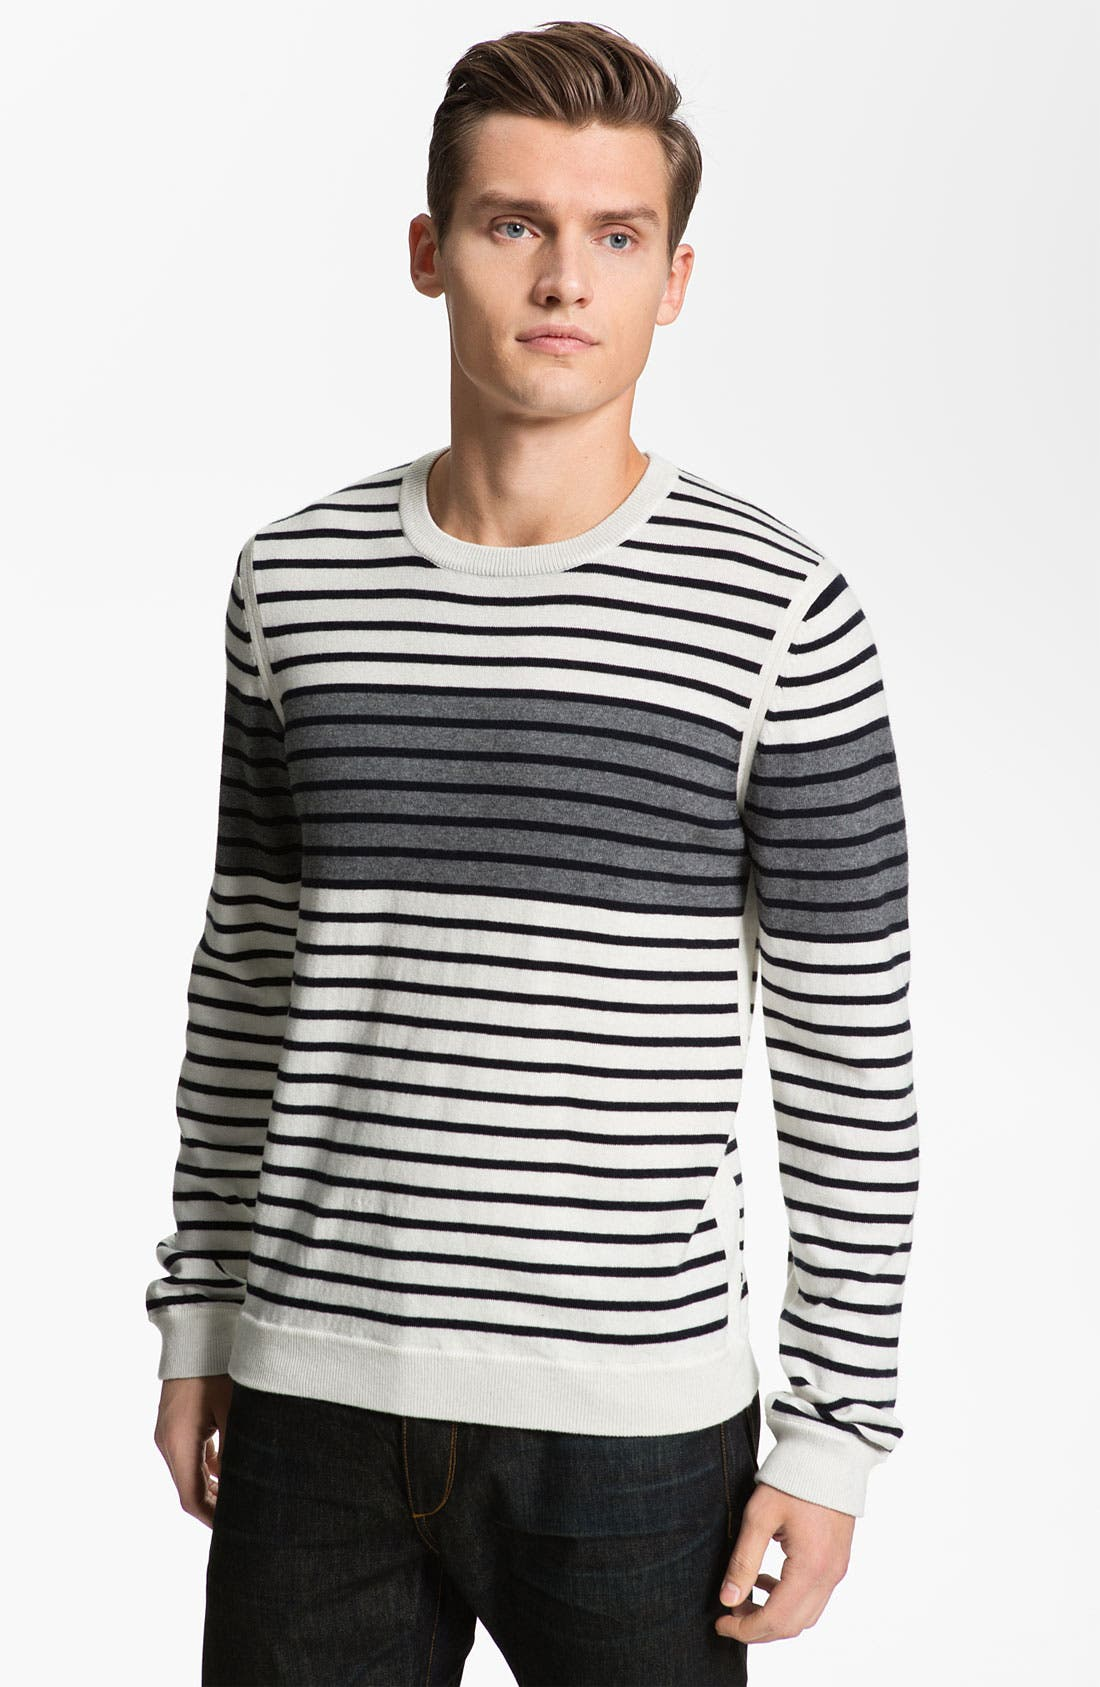 Main Image - rag & bone 'Patagonia' Stripe Crewneck Sweater